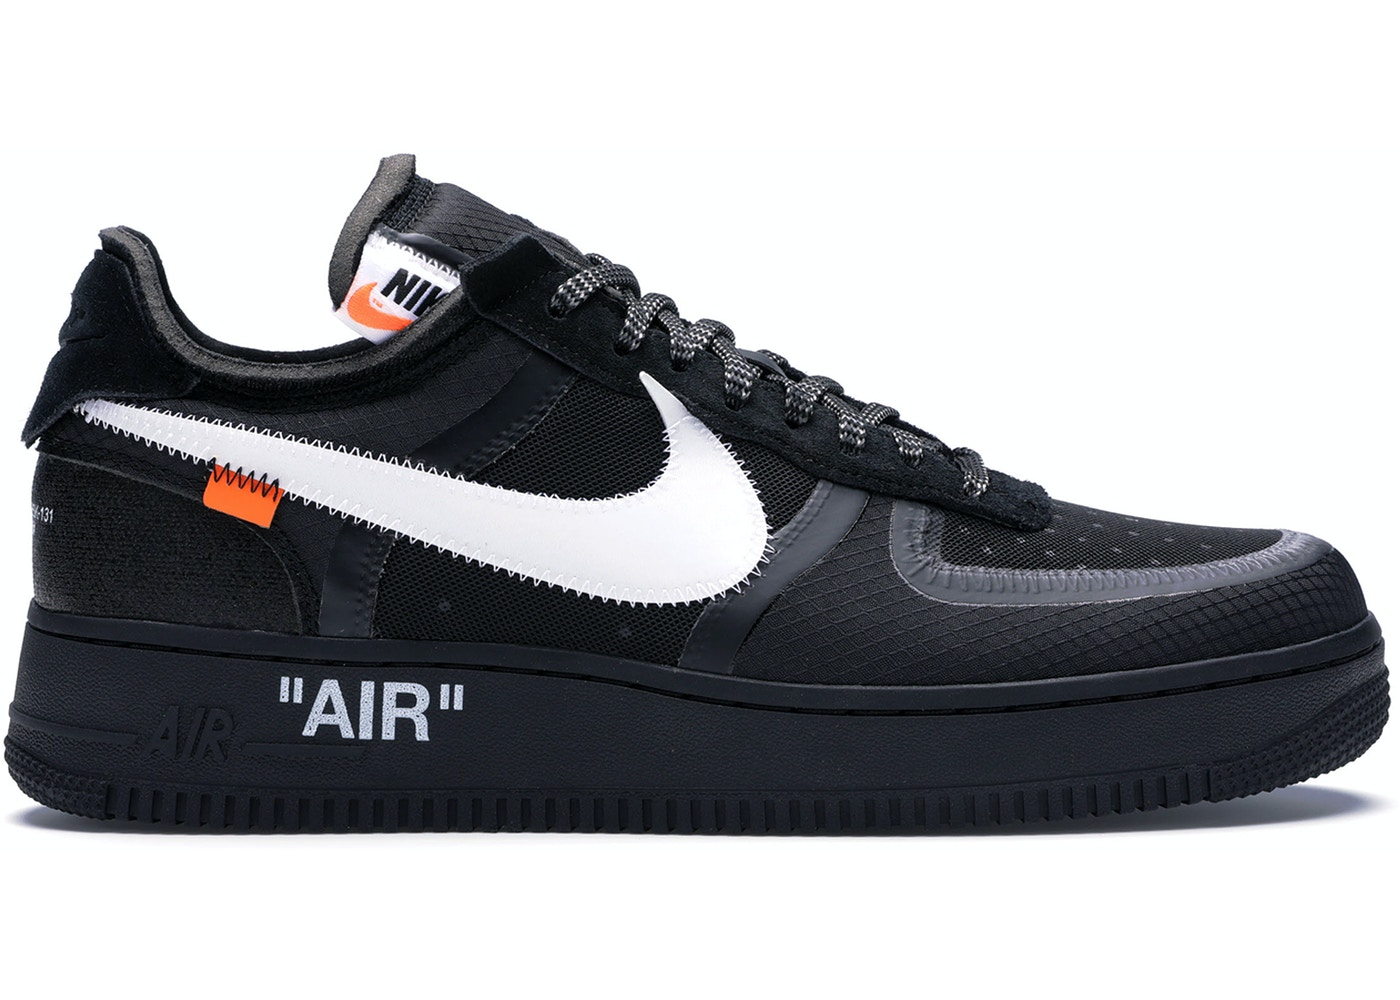 262ea6b5f4 Air Force 1 Low Off-White Black White